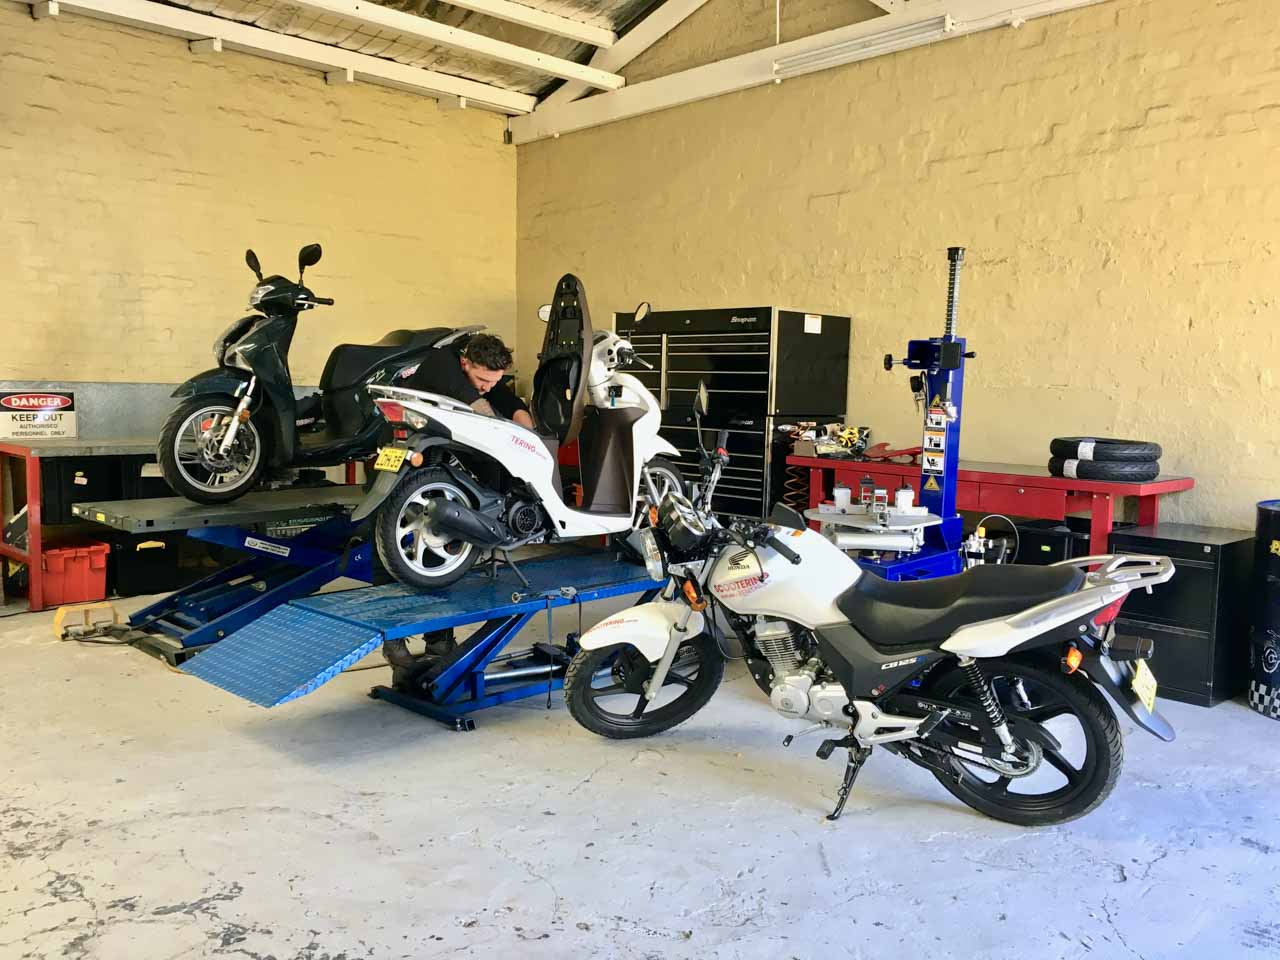 The workshop with bikes at Scootering who provide scooter and motorcycle rental in Sydney